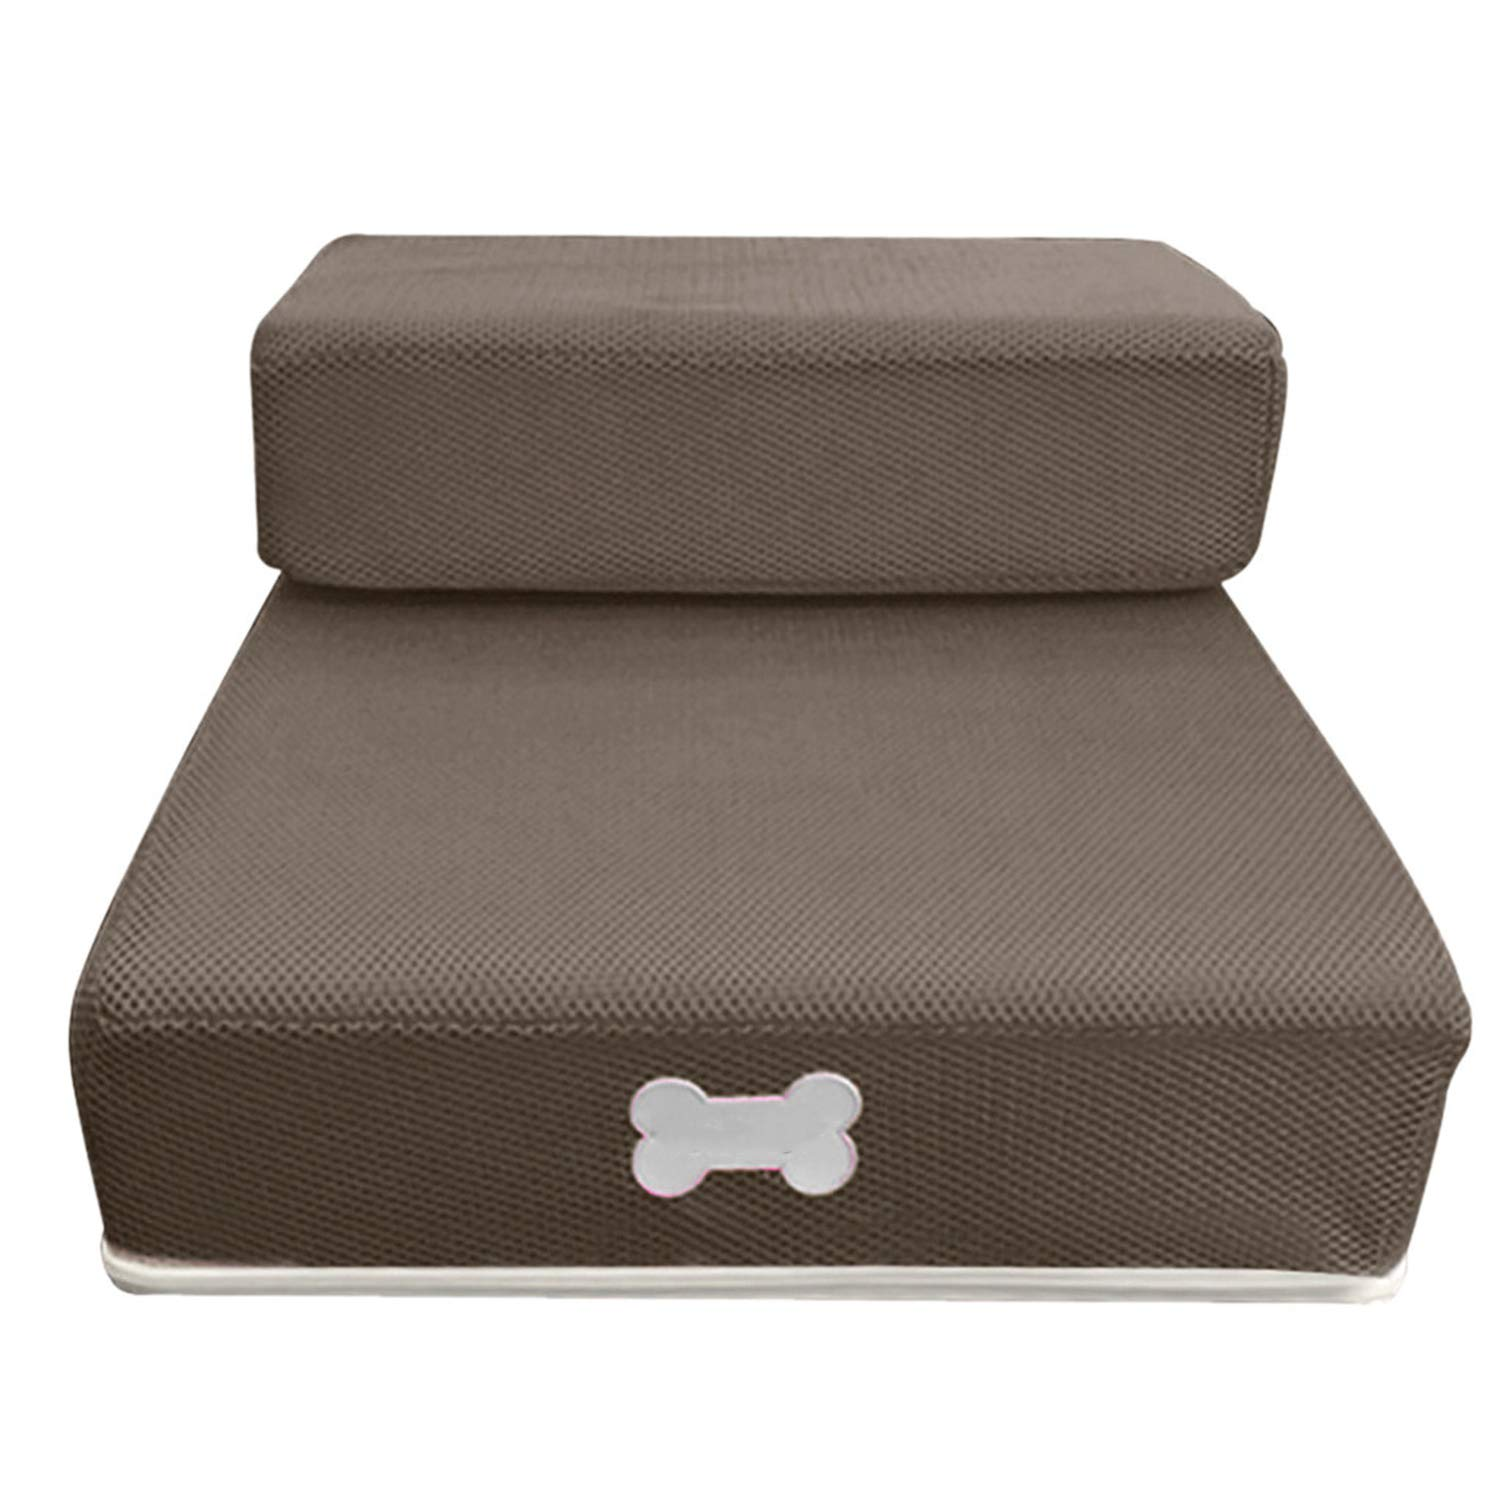 Breathable Mesh Foldable Pet Stairs Detachable Pet Bed Stairs Dog Ramp 2 Steps Ladder for Small Dogs Puppy Cat Bed M/L,Brown,L by Yeaha pet-stairs-and-steps